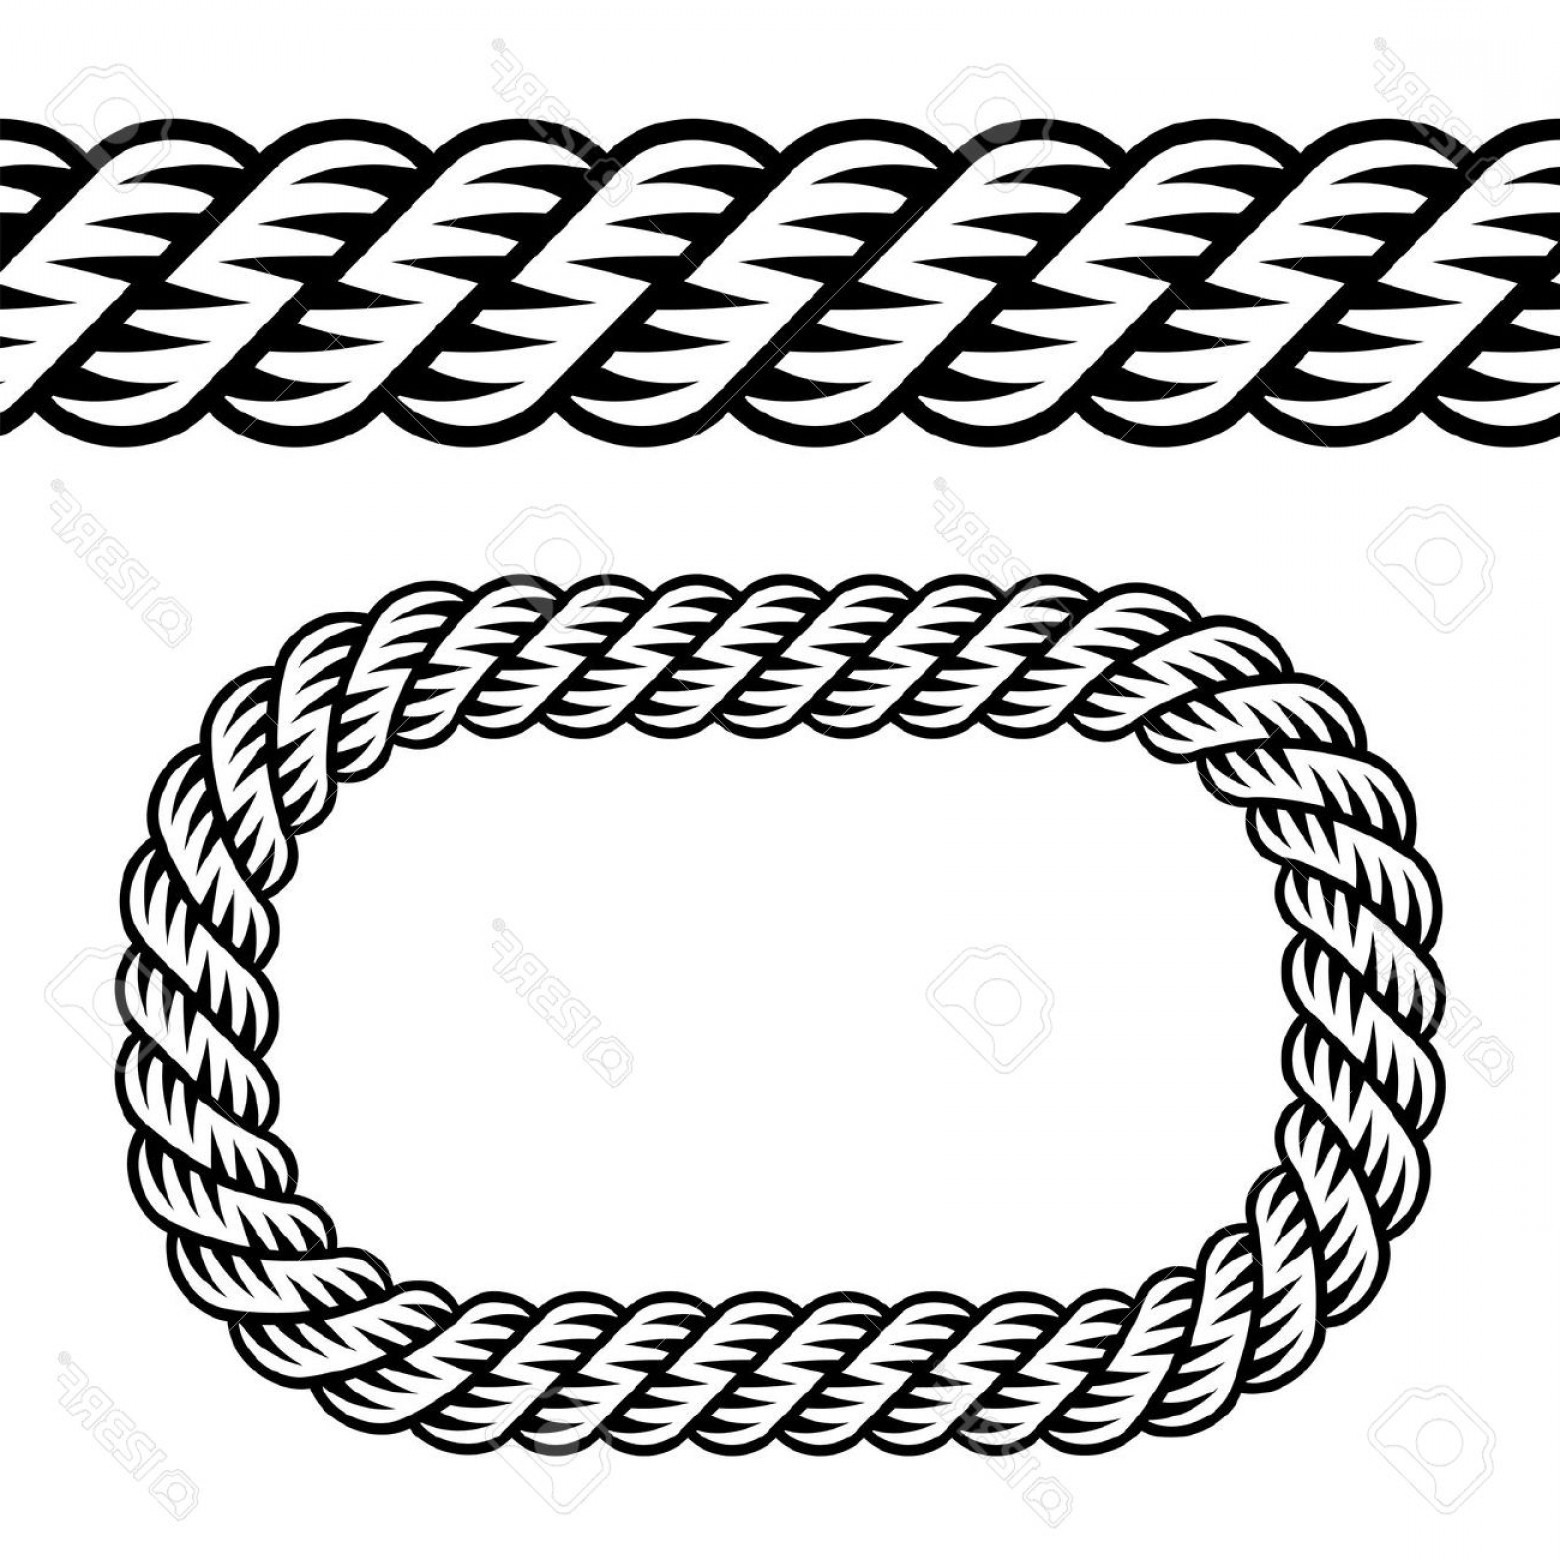 Rope Frame Silhouette Clipart